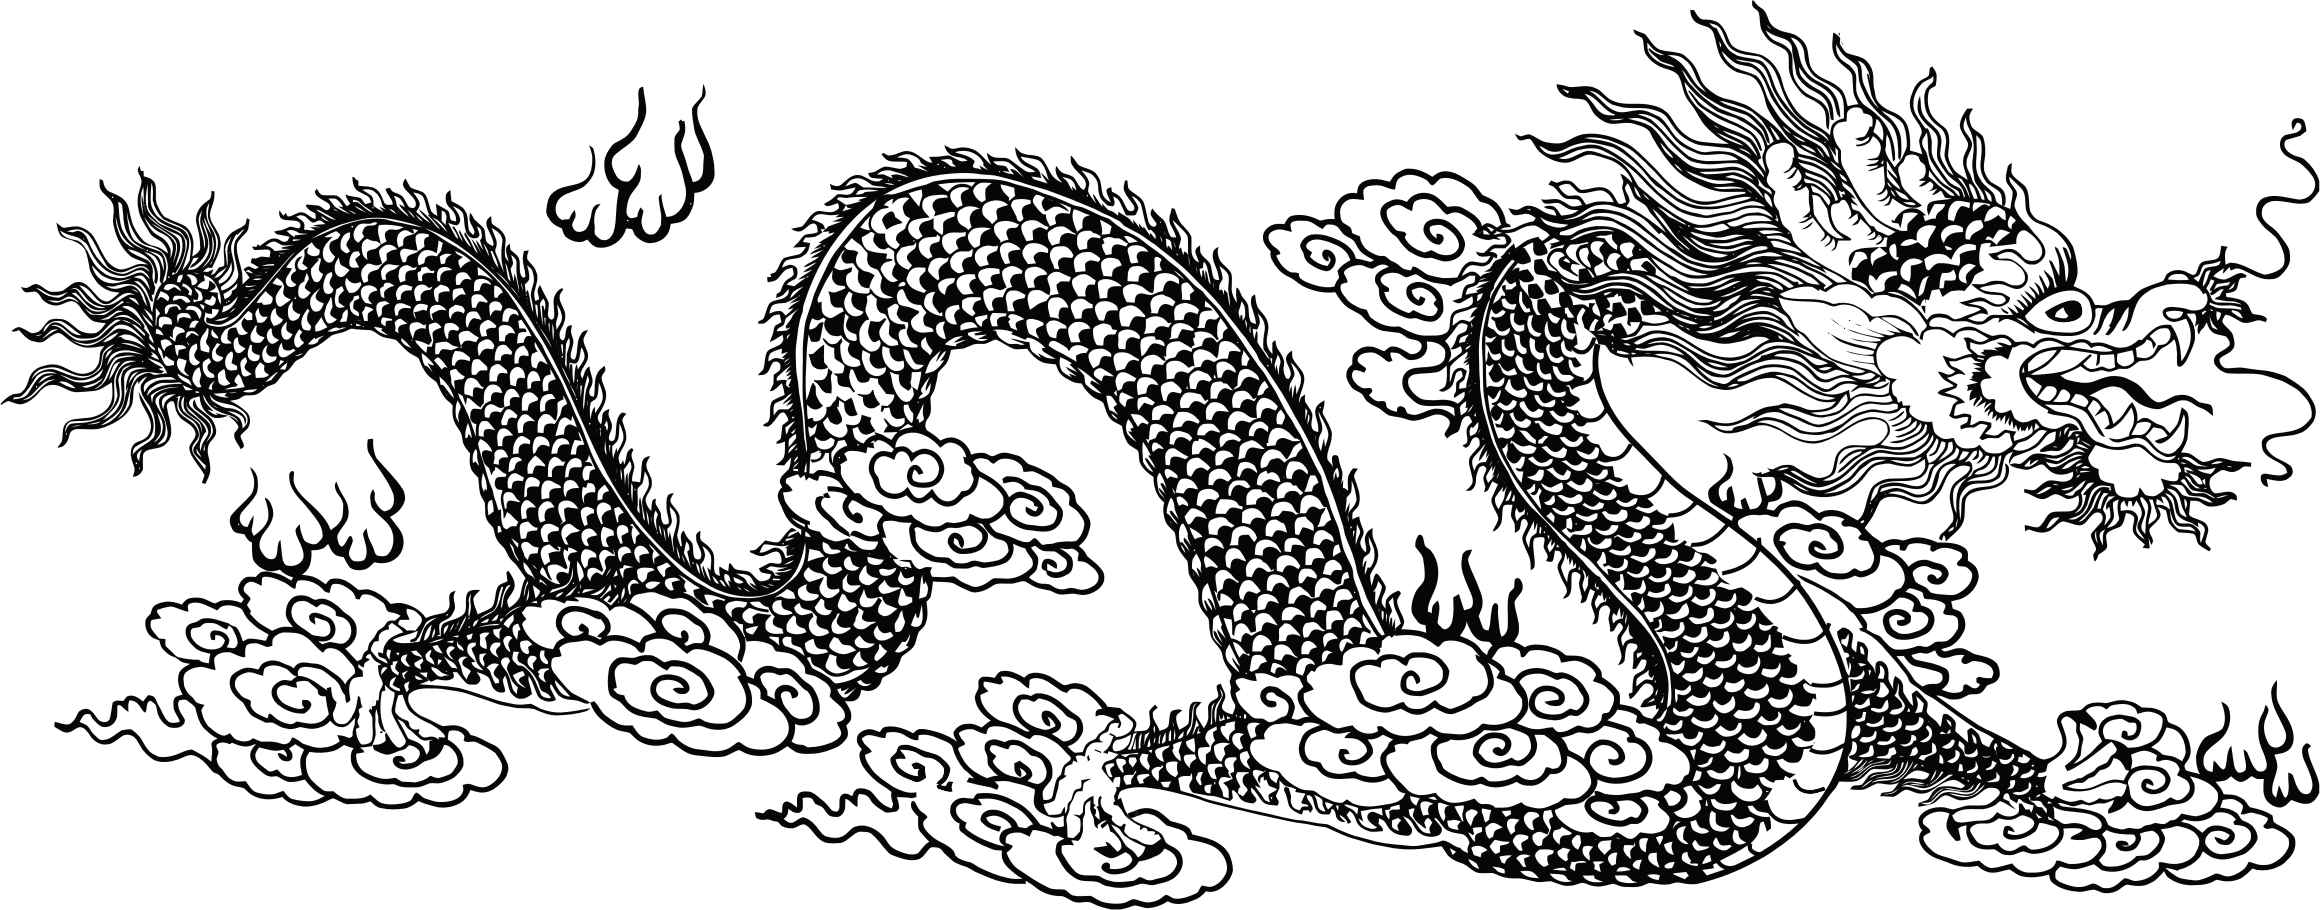 Asian Dragon Line Art by GDJ